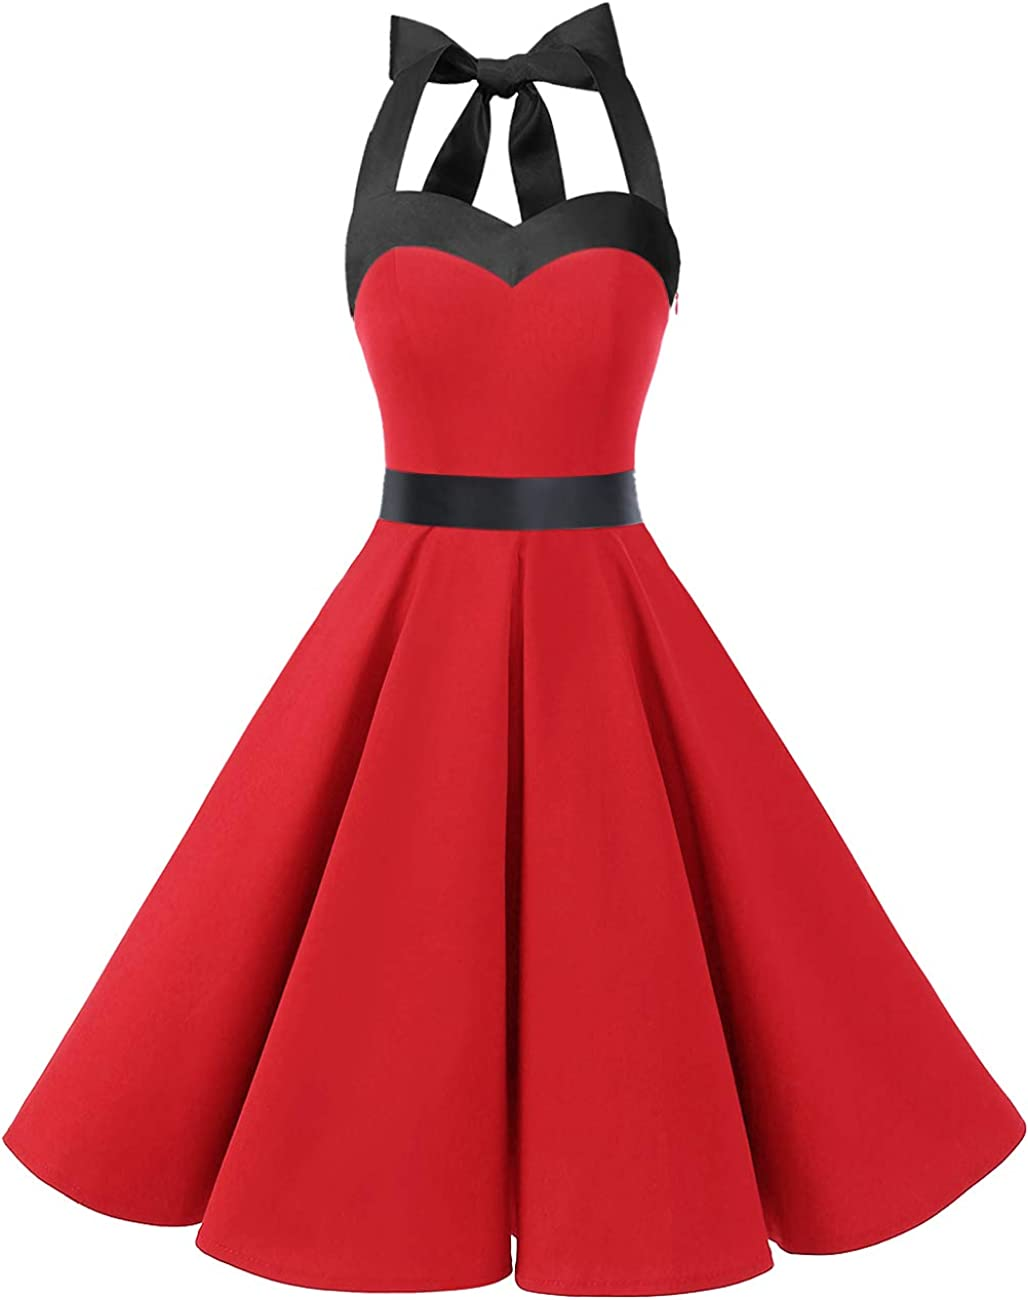 TALLA M. Dresstells® Halter 50s Rockabilly Polka Dots Audrey Dress Retro Cocktail Dress Red Black M